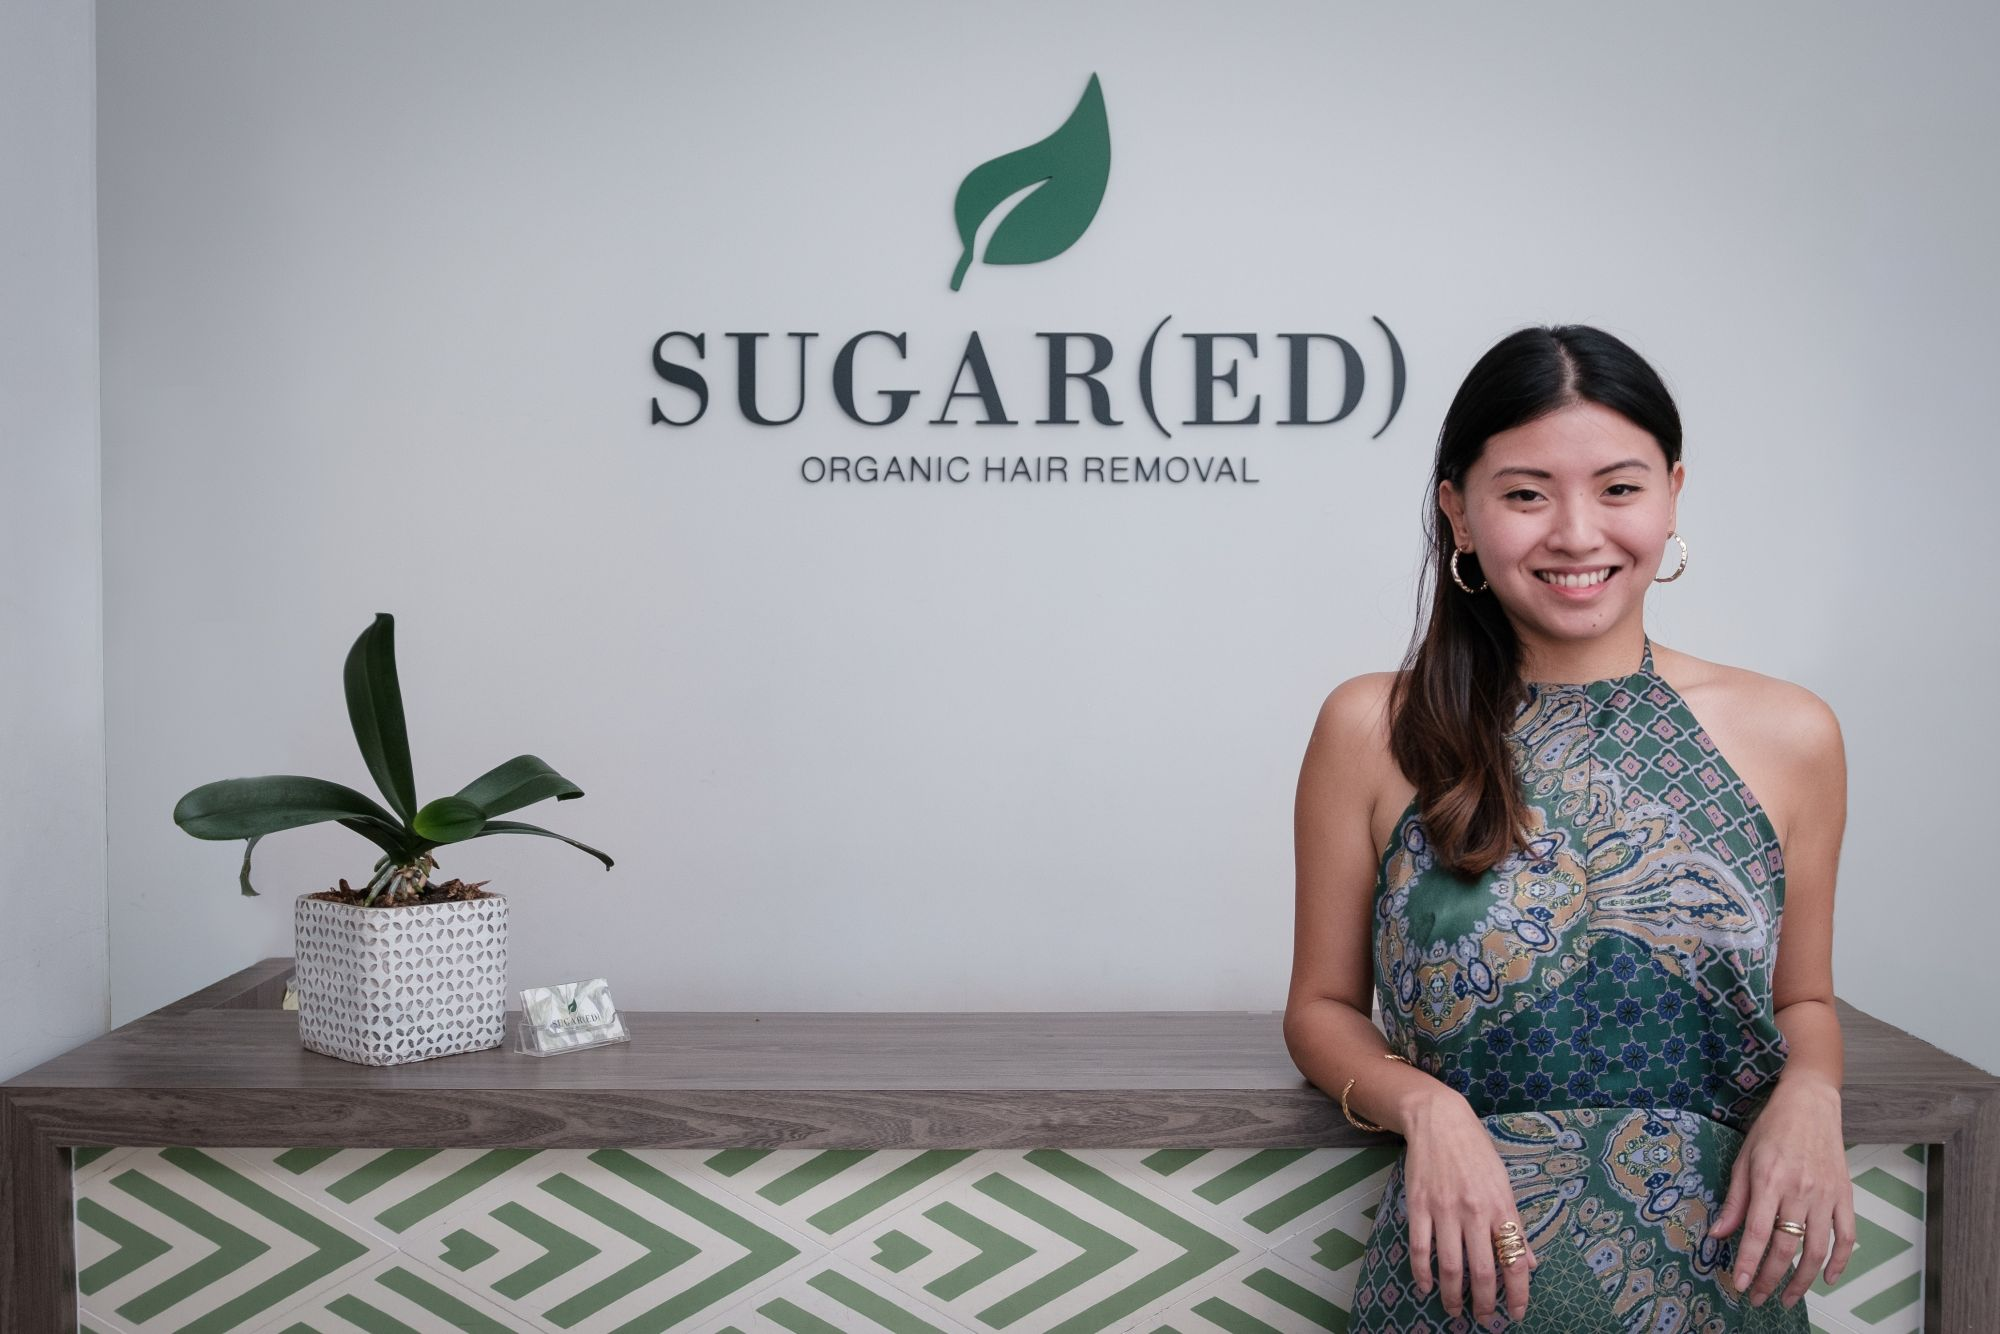 5 Questions With Jasmine Yong, Founder of Sugaring Studio Sugar(ed)